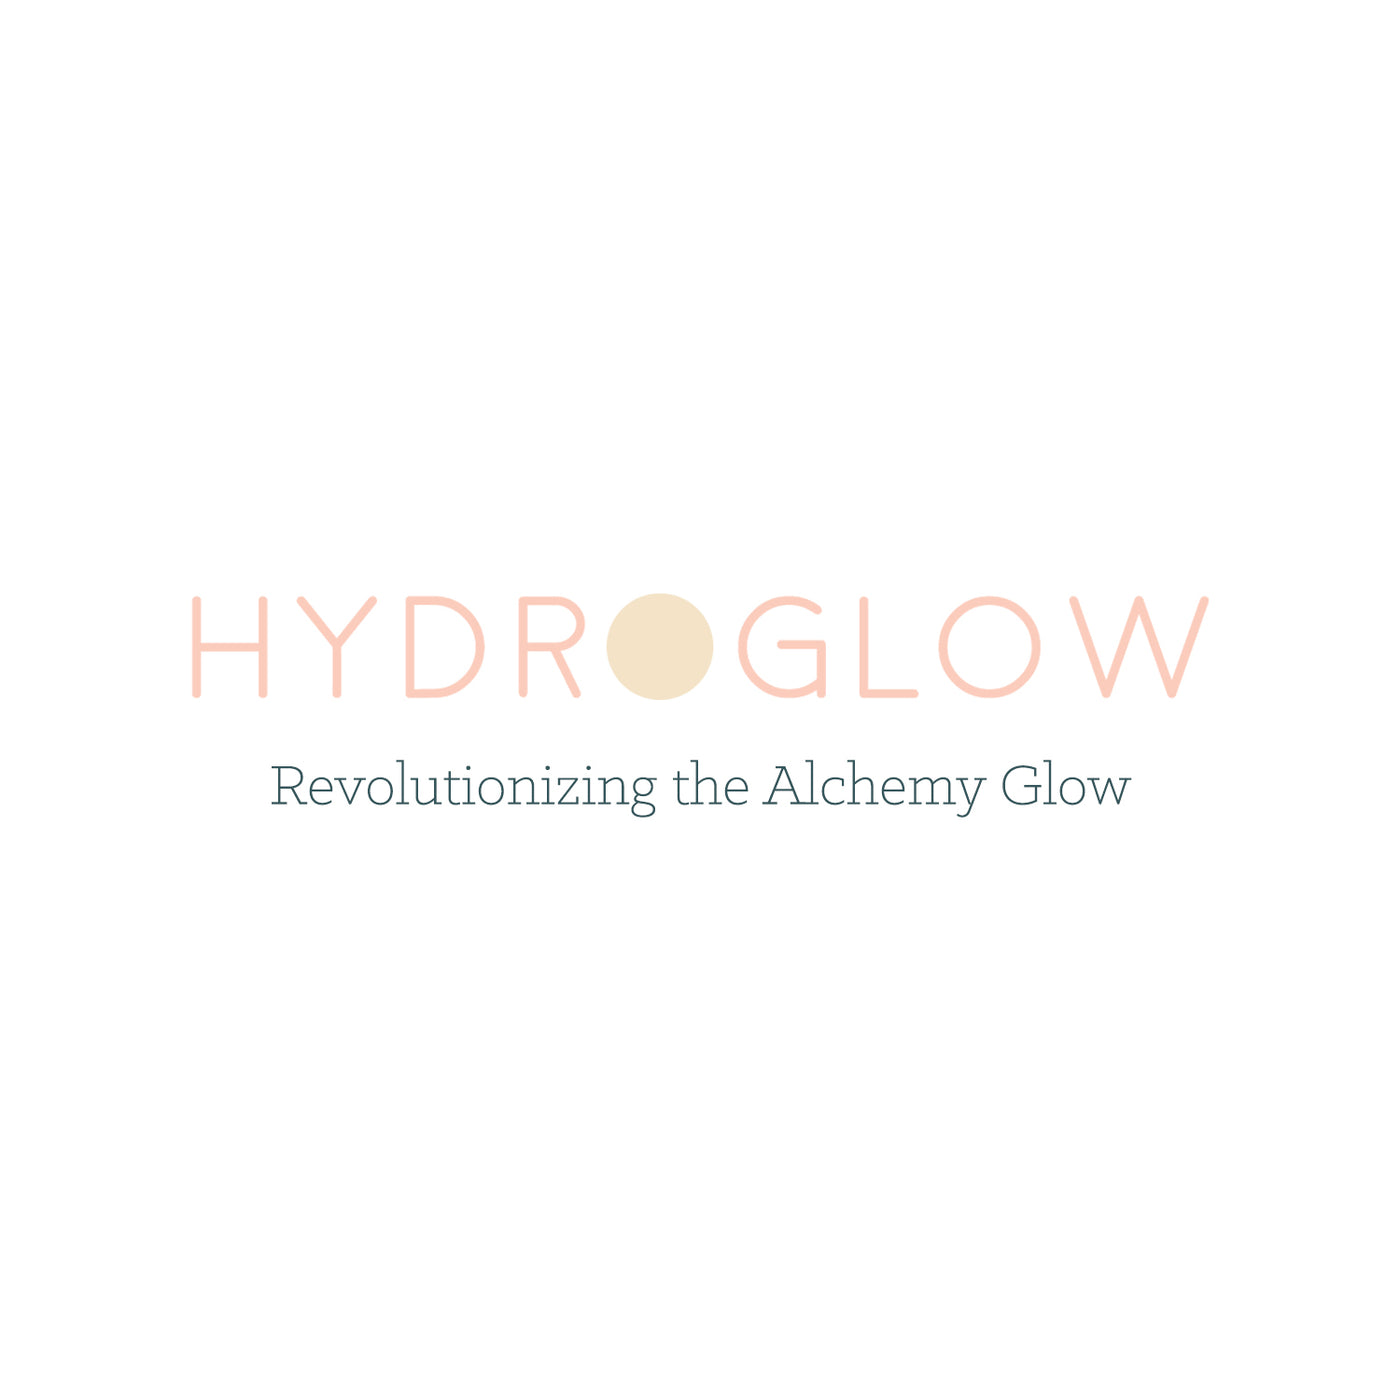 articles/hydroglow_graphic2.jpg